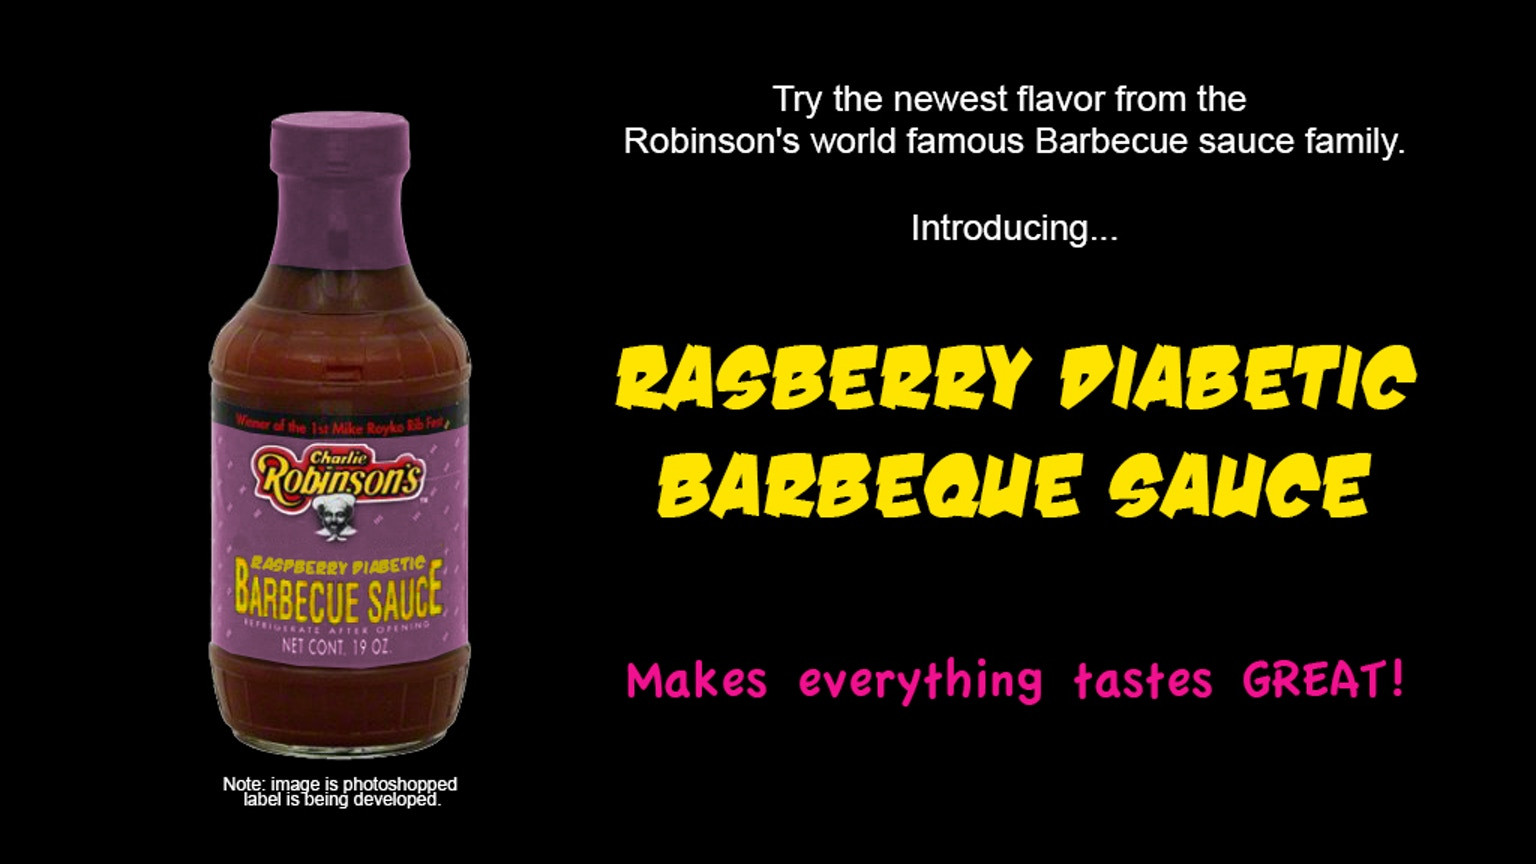 Diabetic Barbecue Sauce Recipes  Rasberry Diabetic Barbecue Sauce by Charlie Robinson